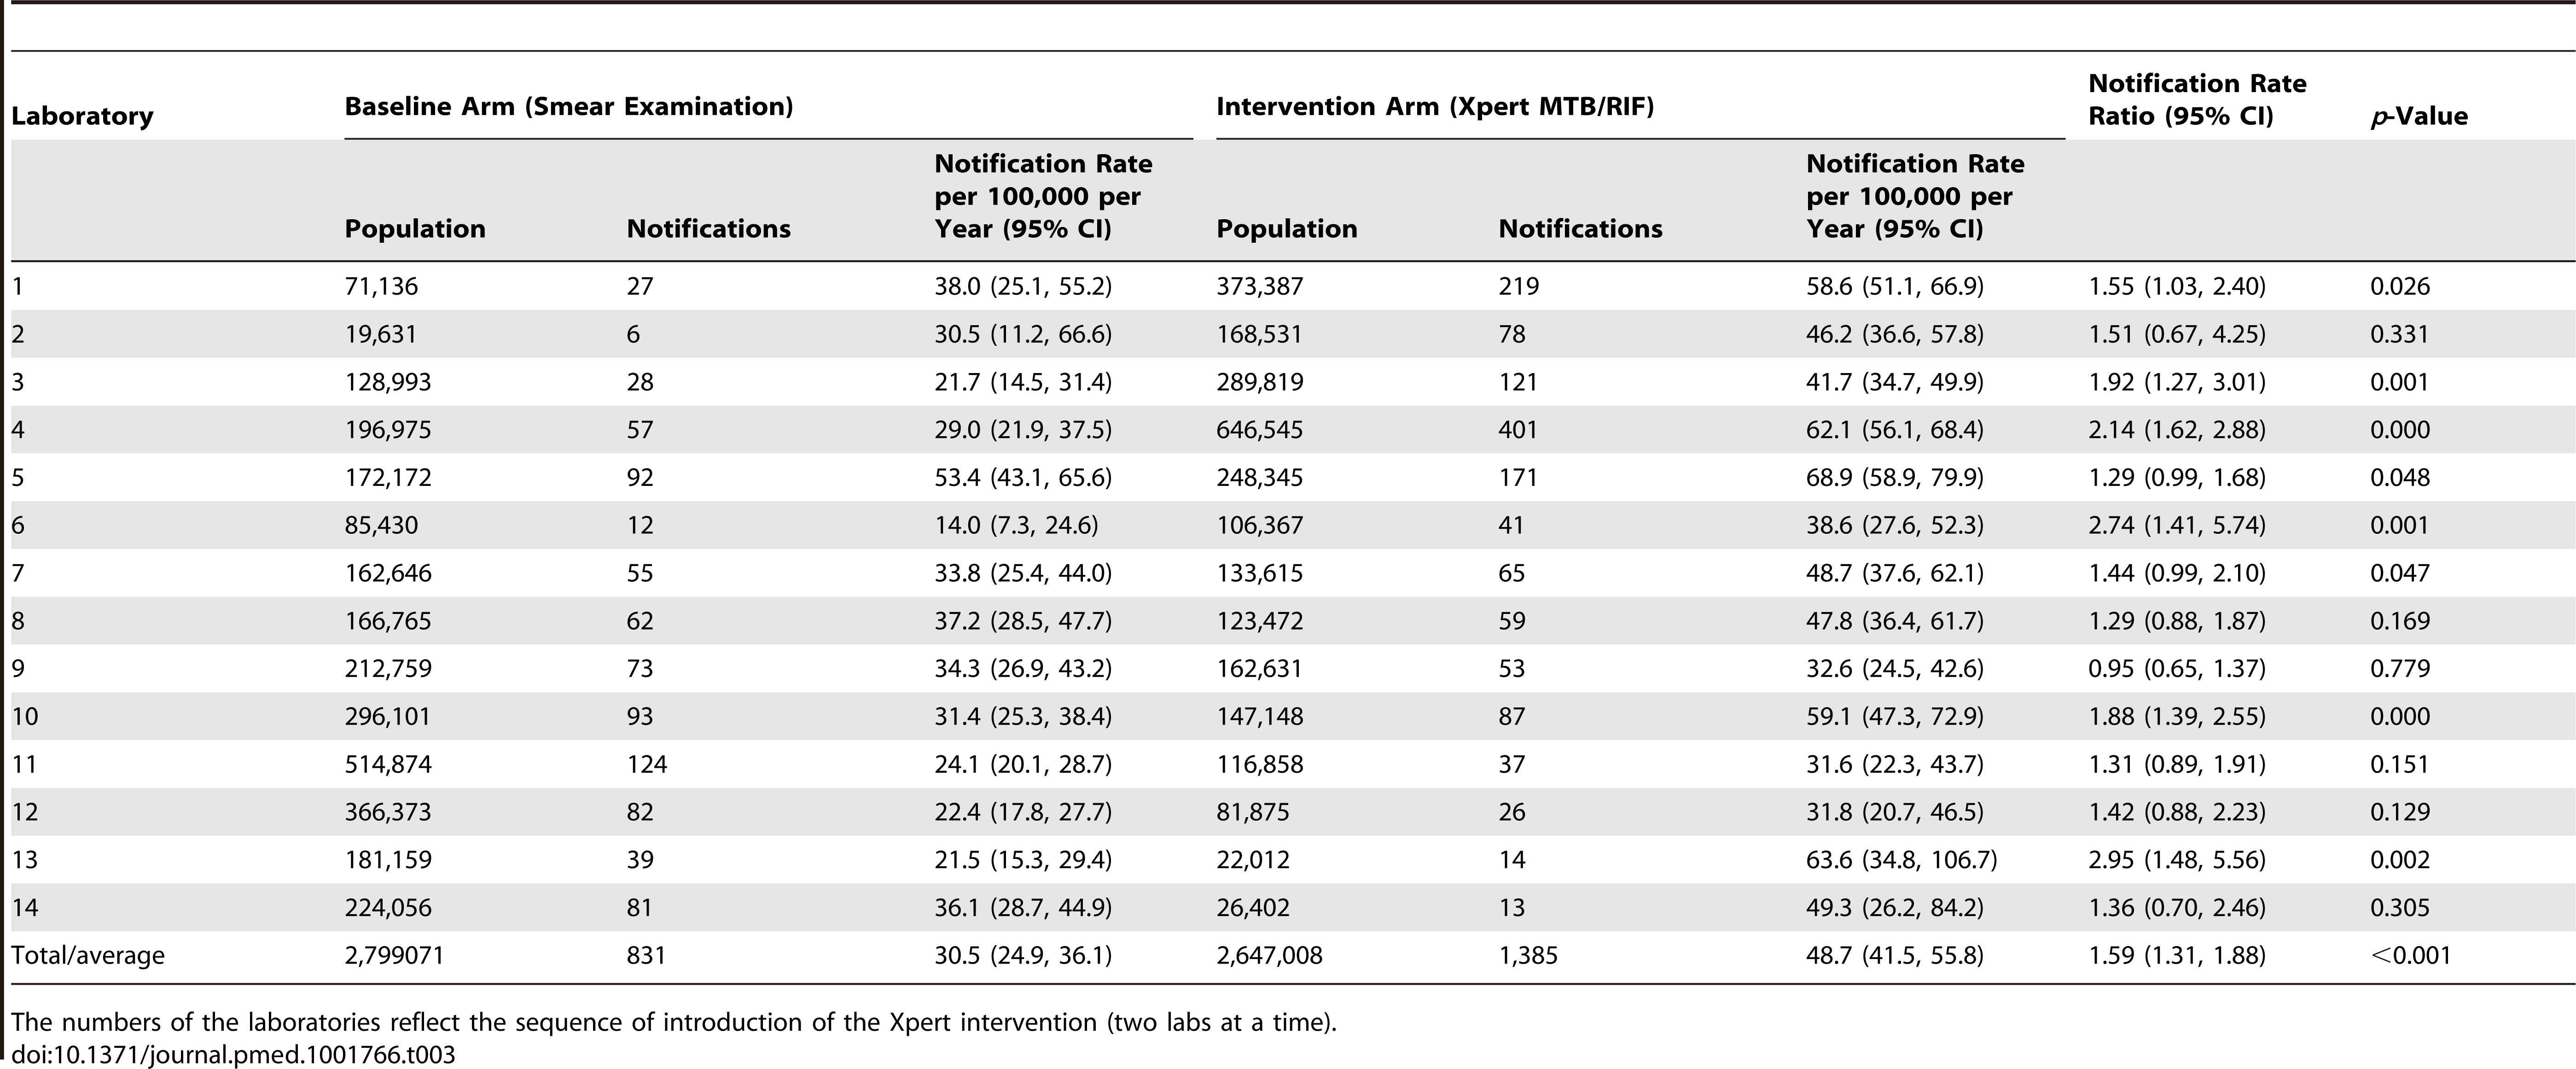 Notifications of pulmonary tuberculosis by laboratory according to arm (baseline versus intervention).